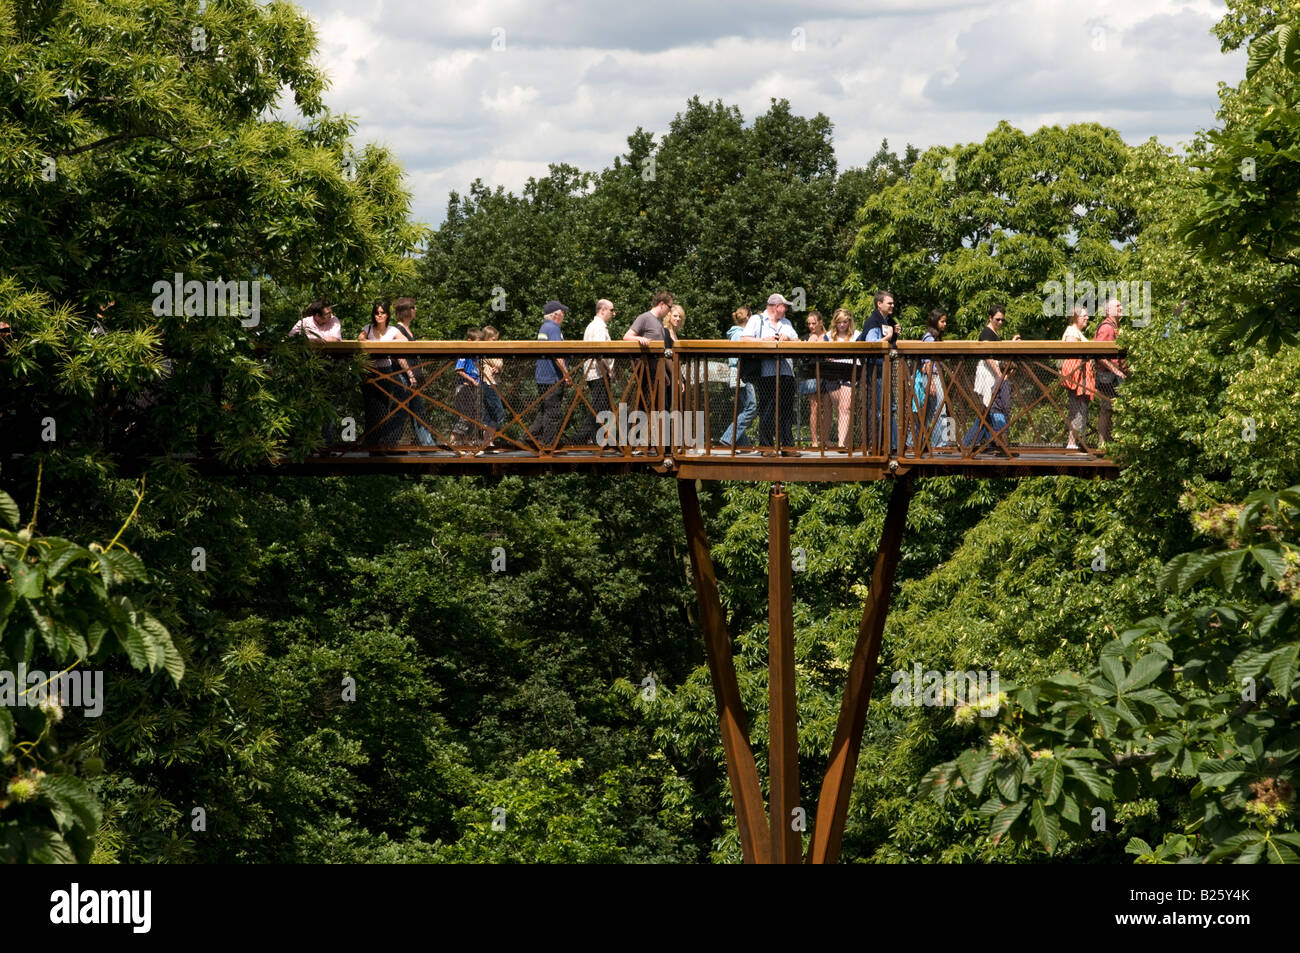 Xstrata Treetop Walkway à Kew Gardens, Londres, Angleterre, Royaume-Uni Photo Stock